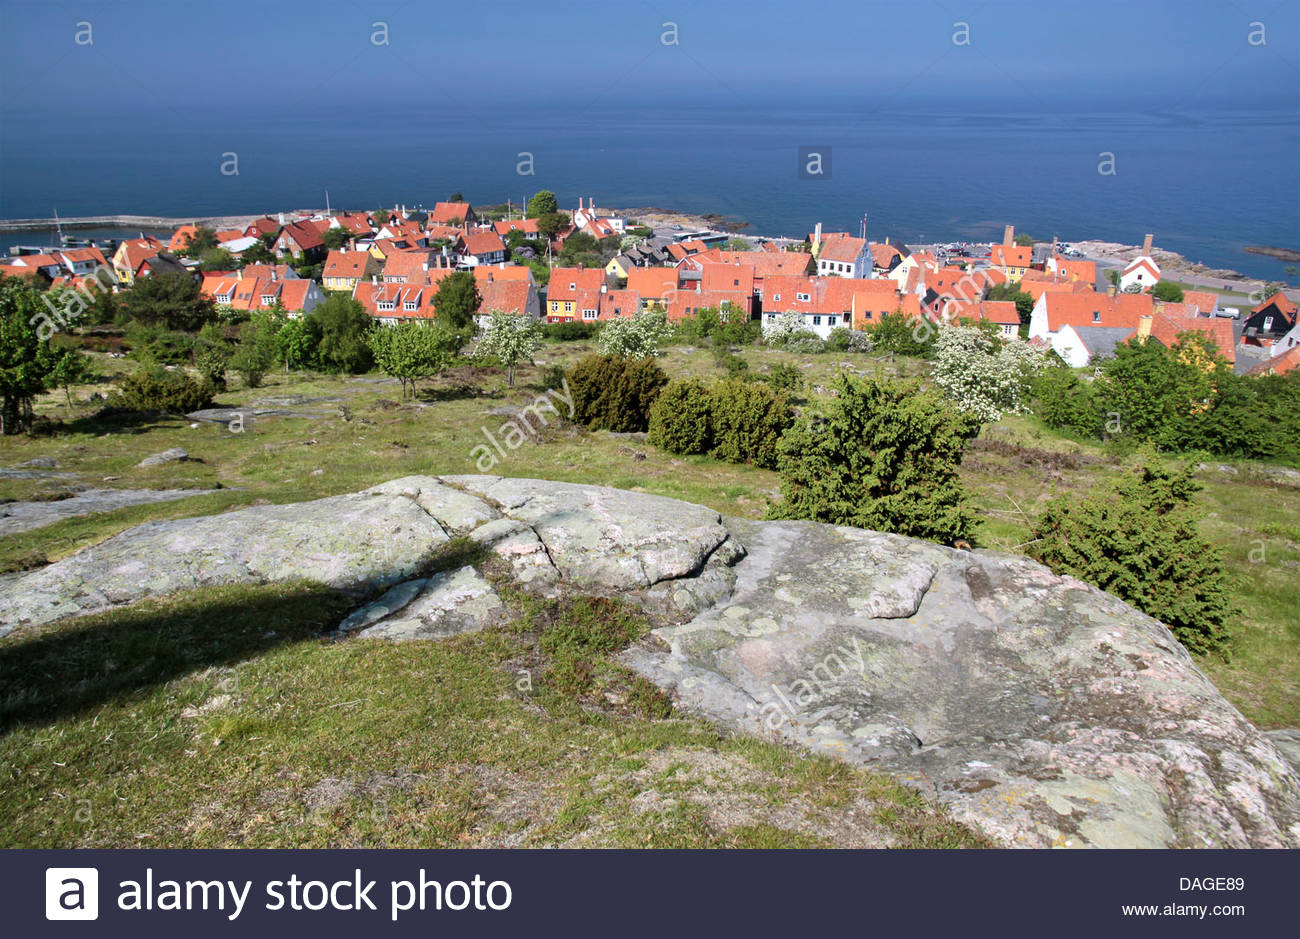 View of Gudhjem of elevated viewpoint, Bornholm, Denmark - Stock Image